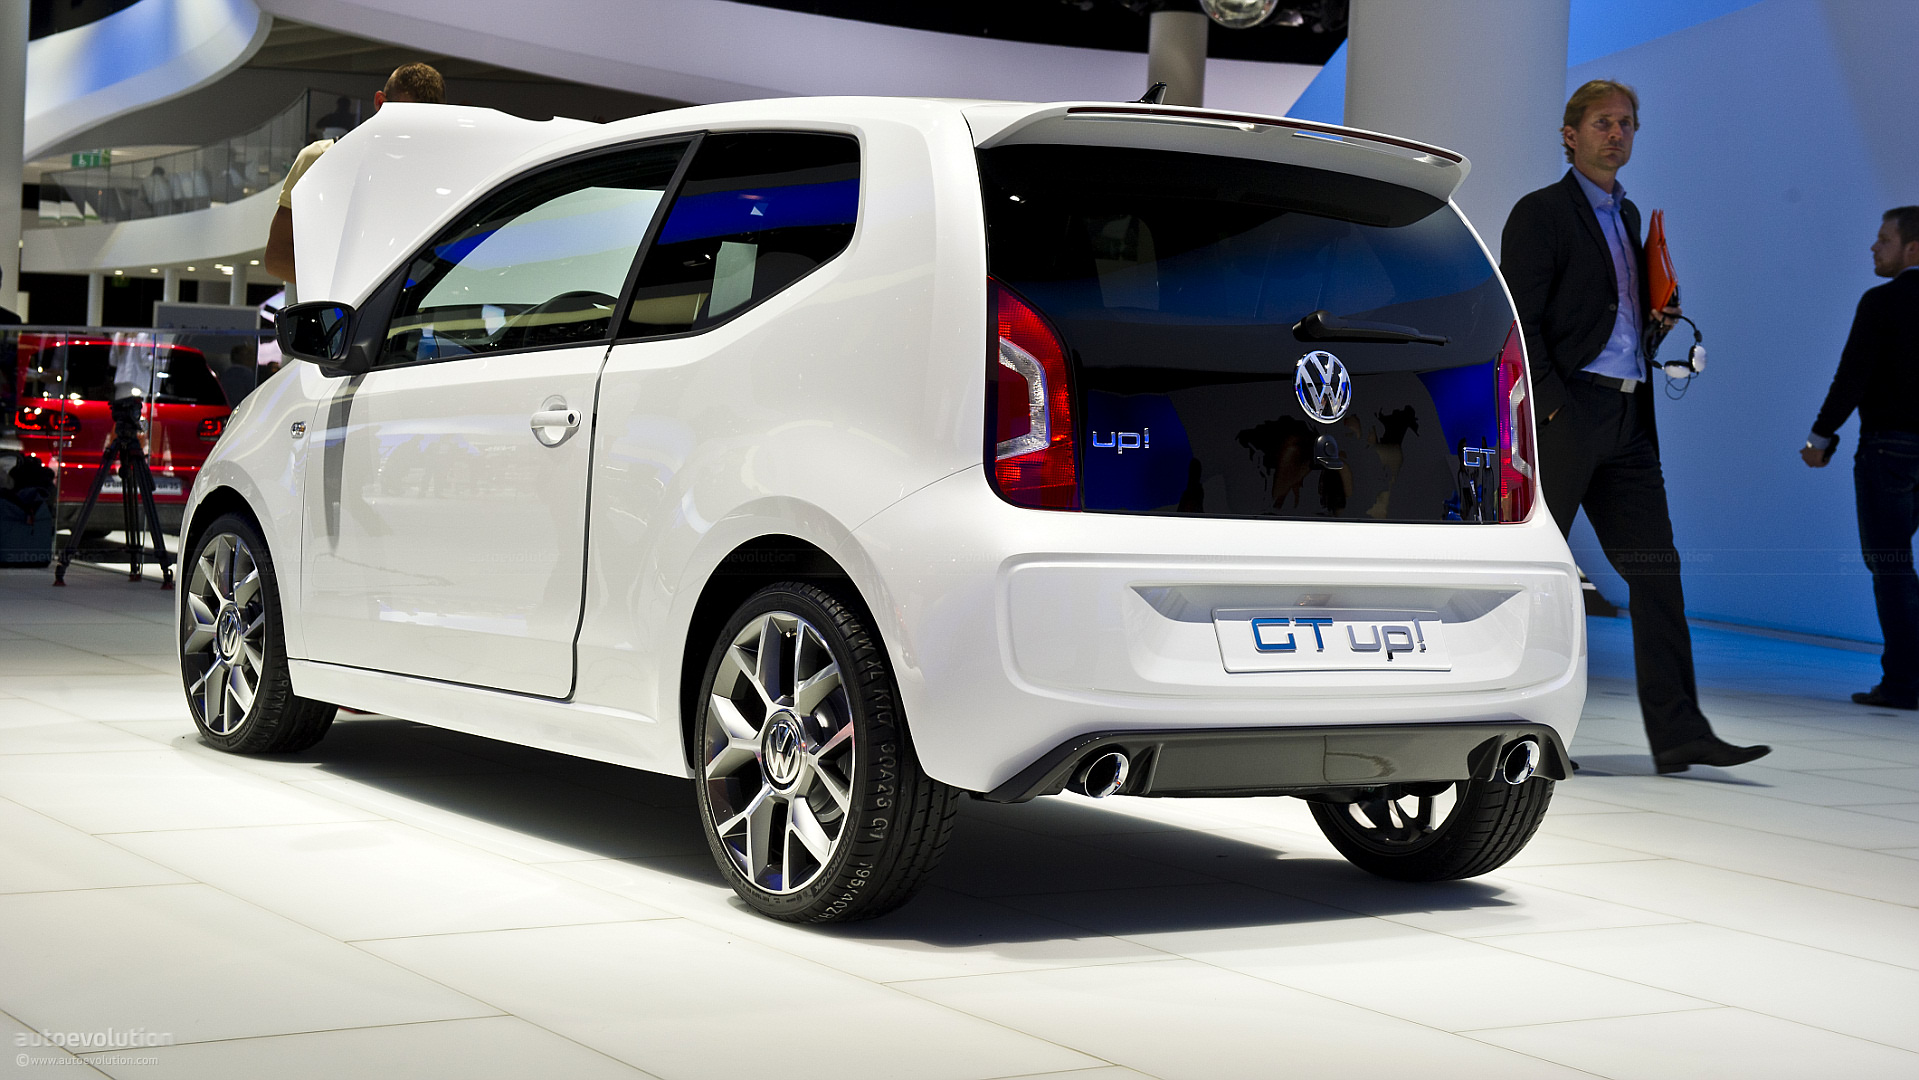 VW GT up! photo 03